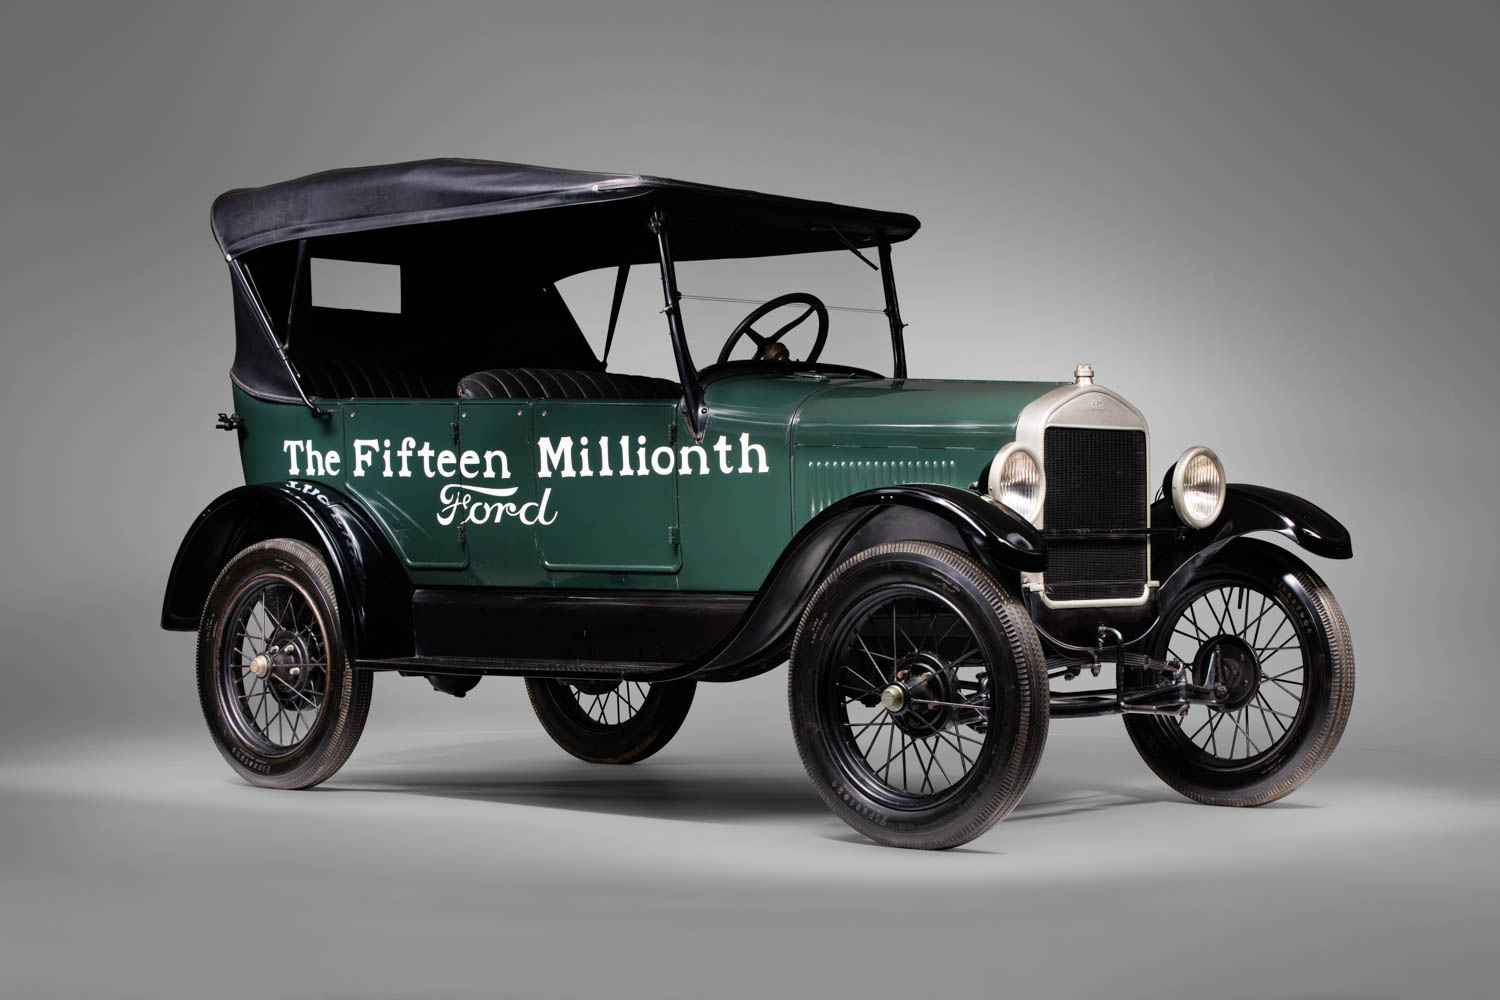 1927 Ford Model T Touring (Fifteen-Millionth Ford)